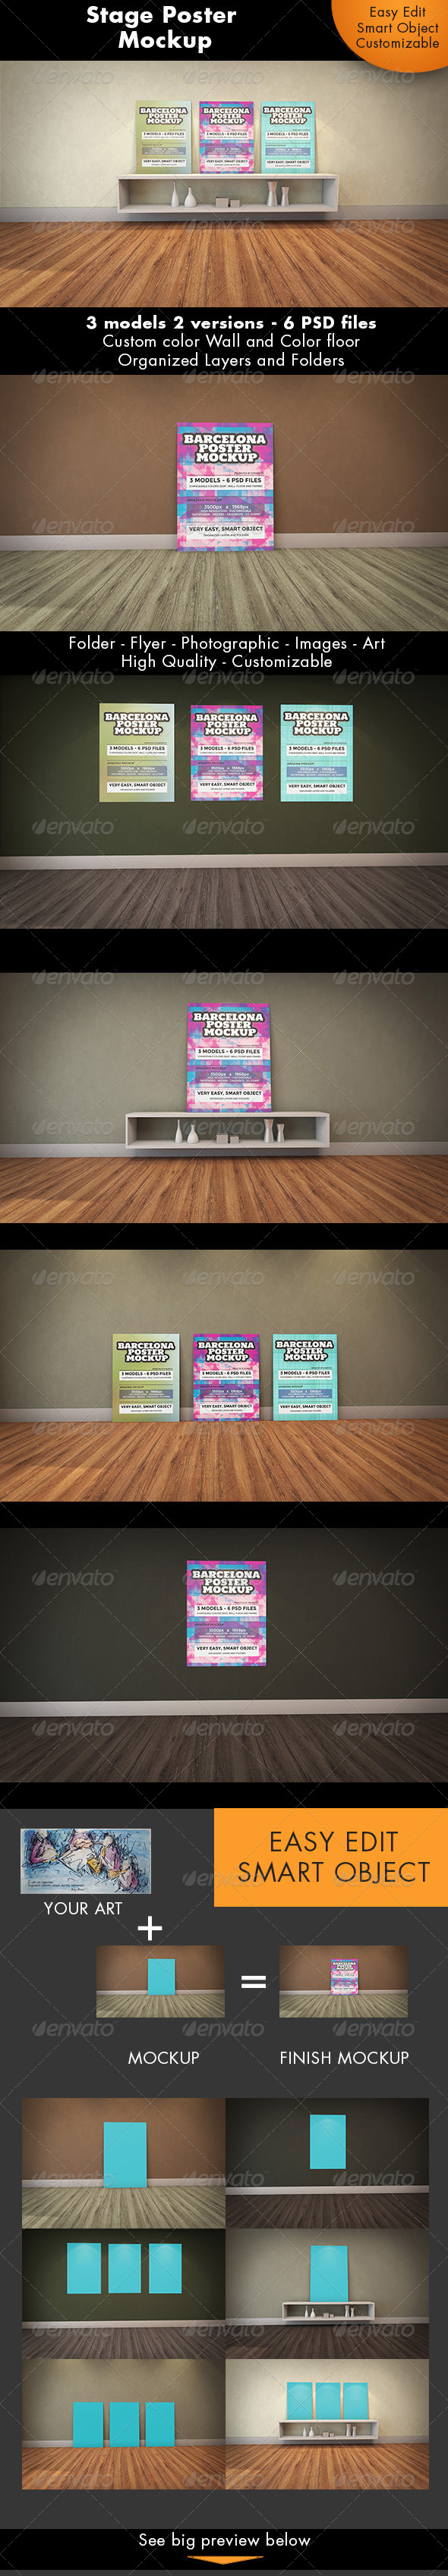 GraphicRiver Stage Poster Mockup 7665904